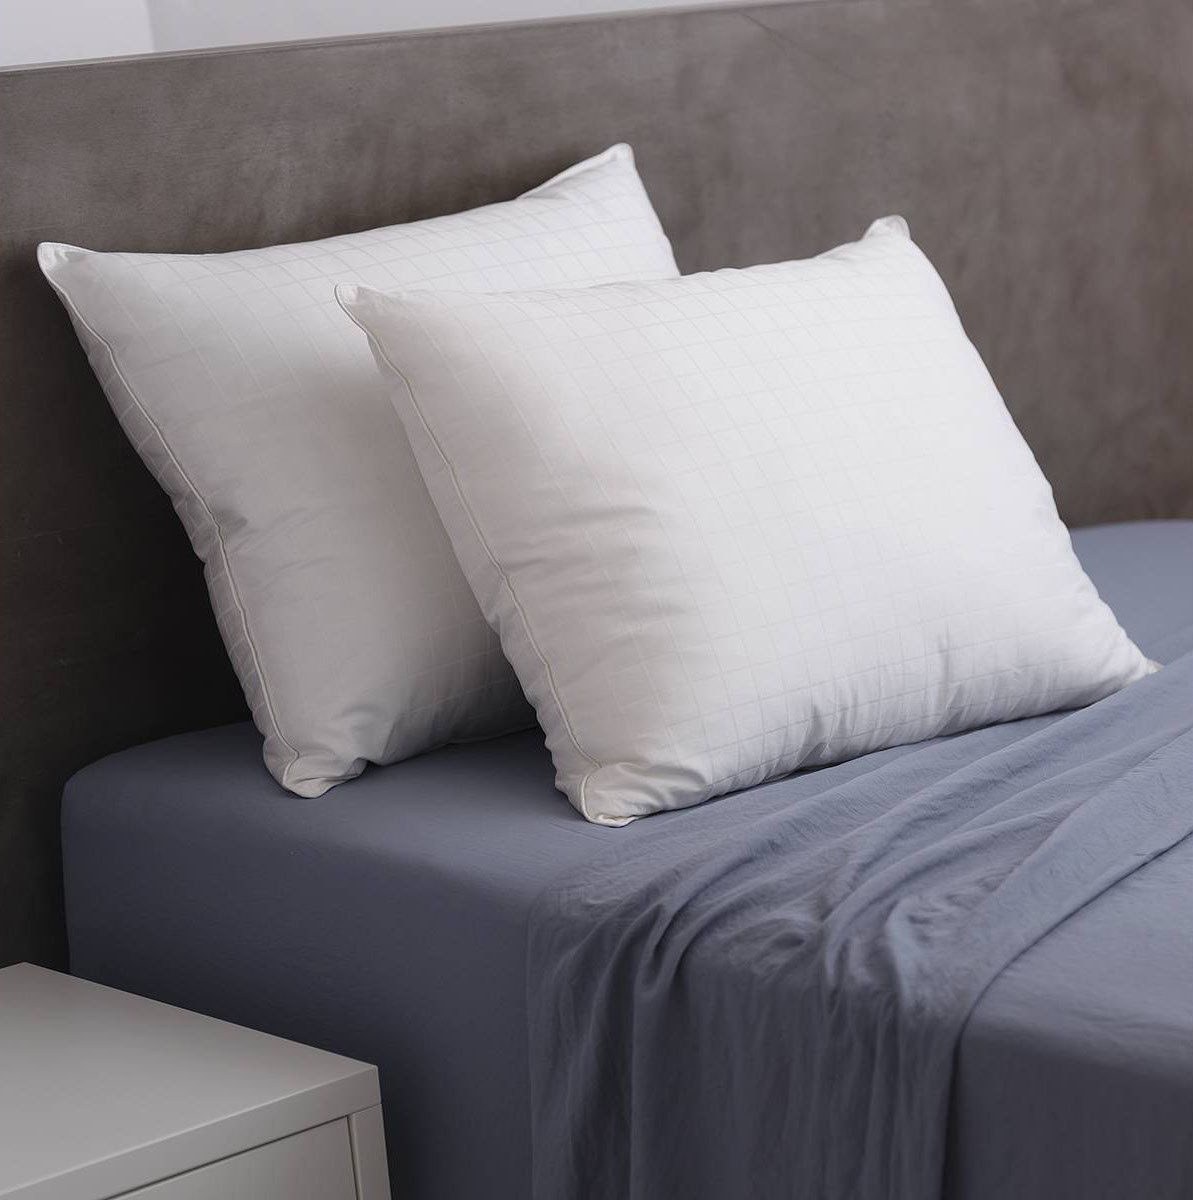 The pillows, on a bed